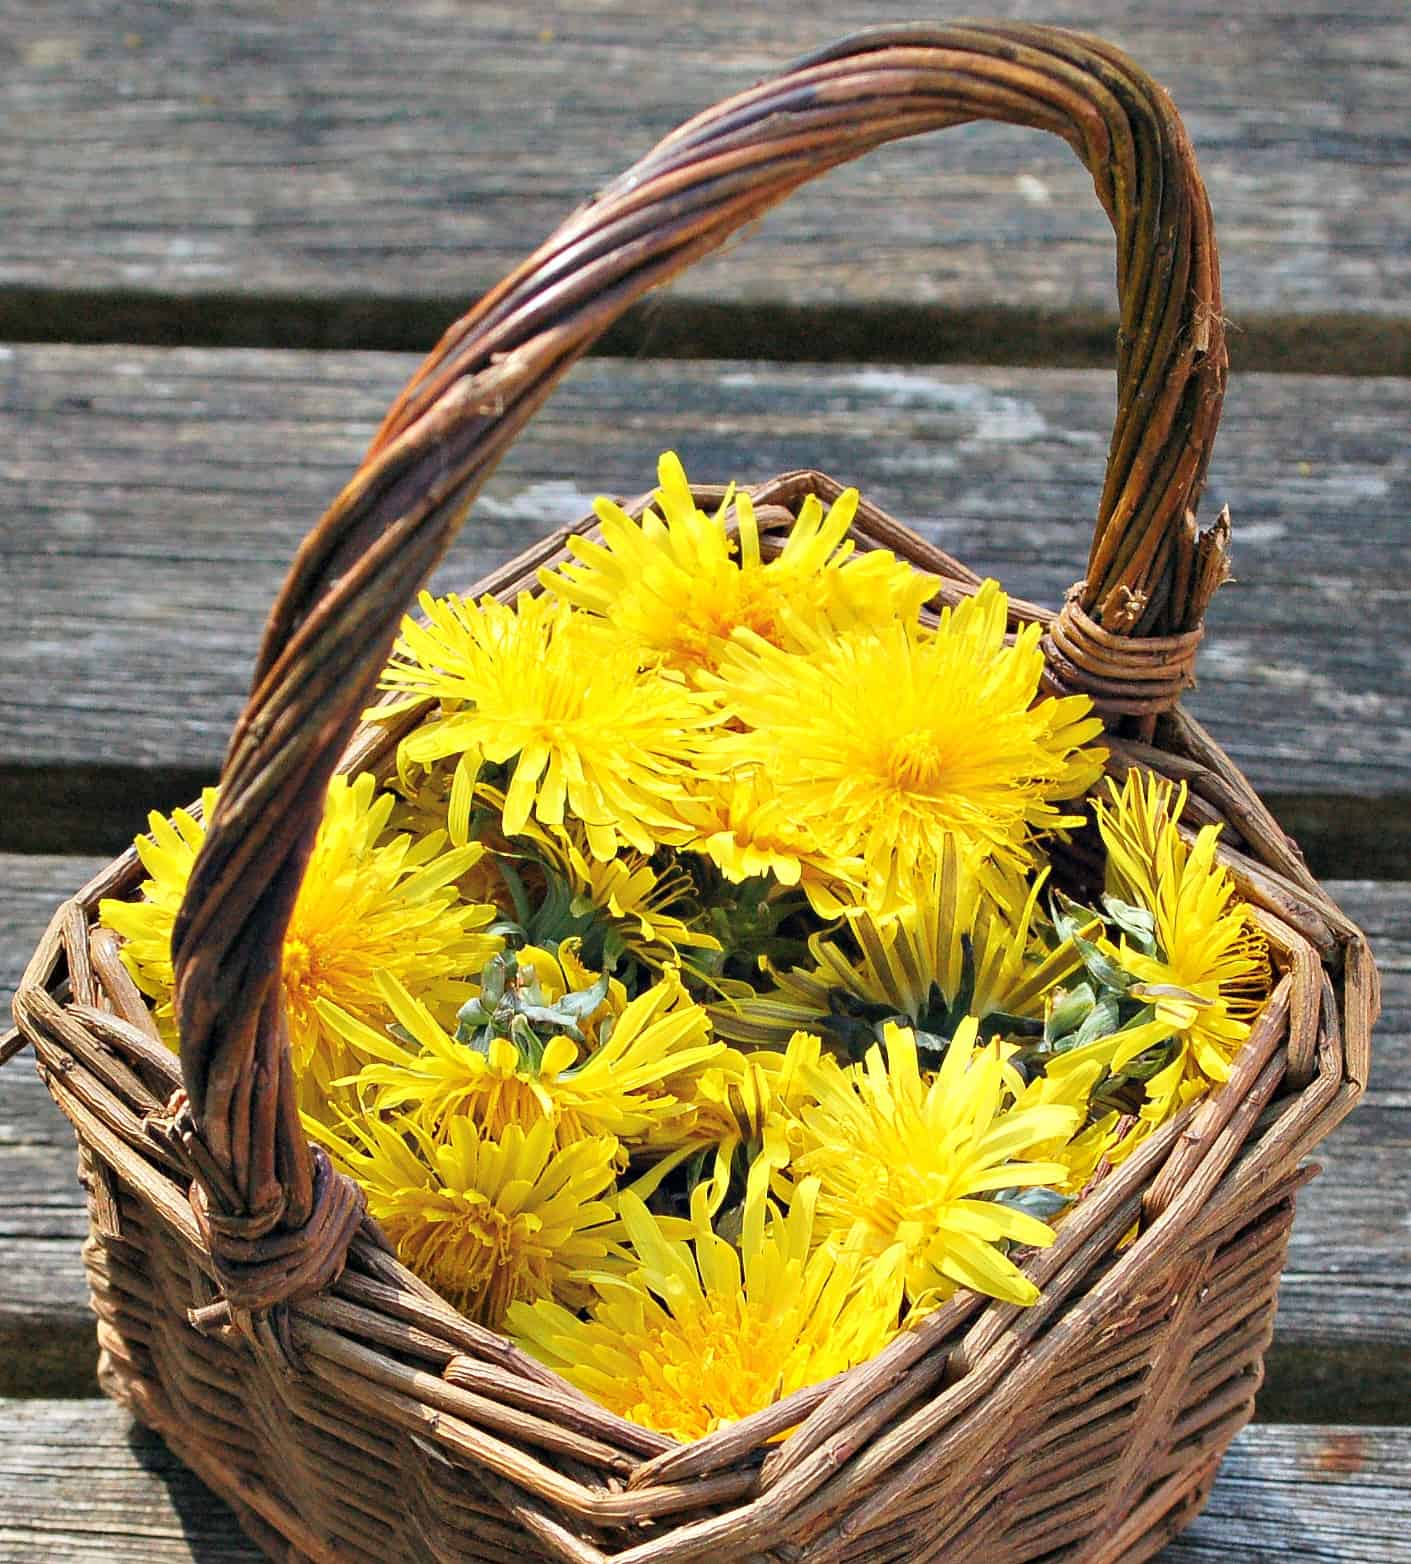 Wonderful recipe using Dandelion Flower petals - great fun for kids to make teaches them about the idea of edible weeds starting with a plant that we can all identify